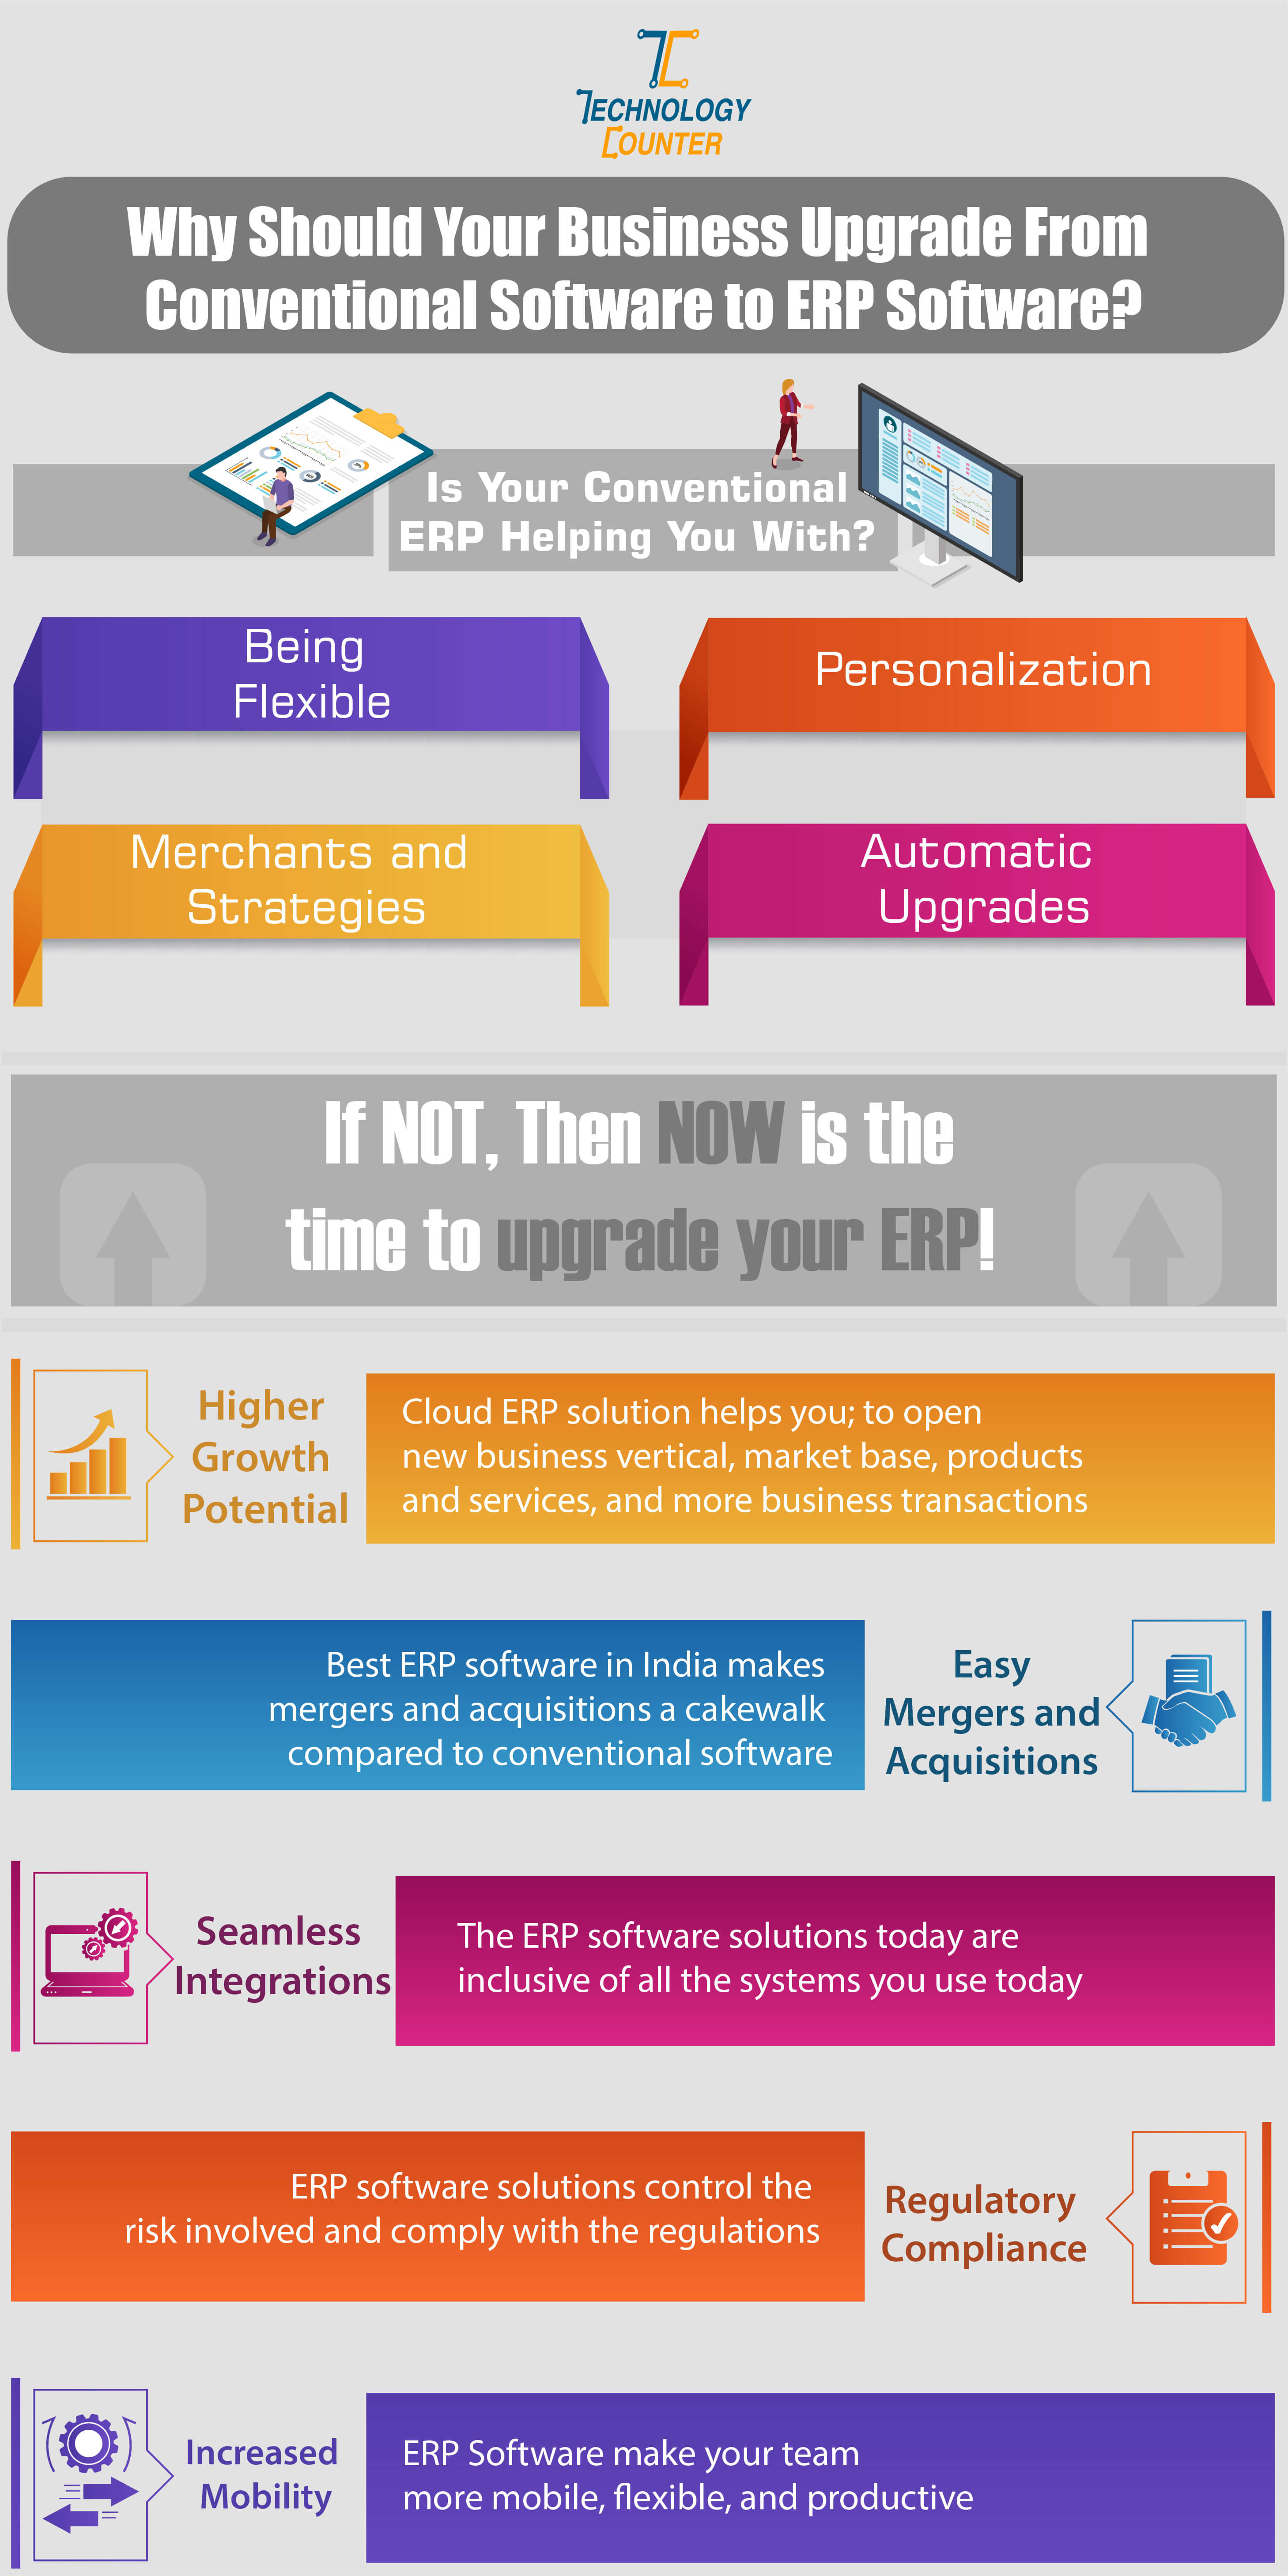 Why should your business upgrade from conventional software to ERP software?